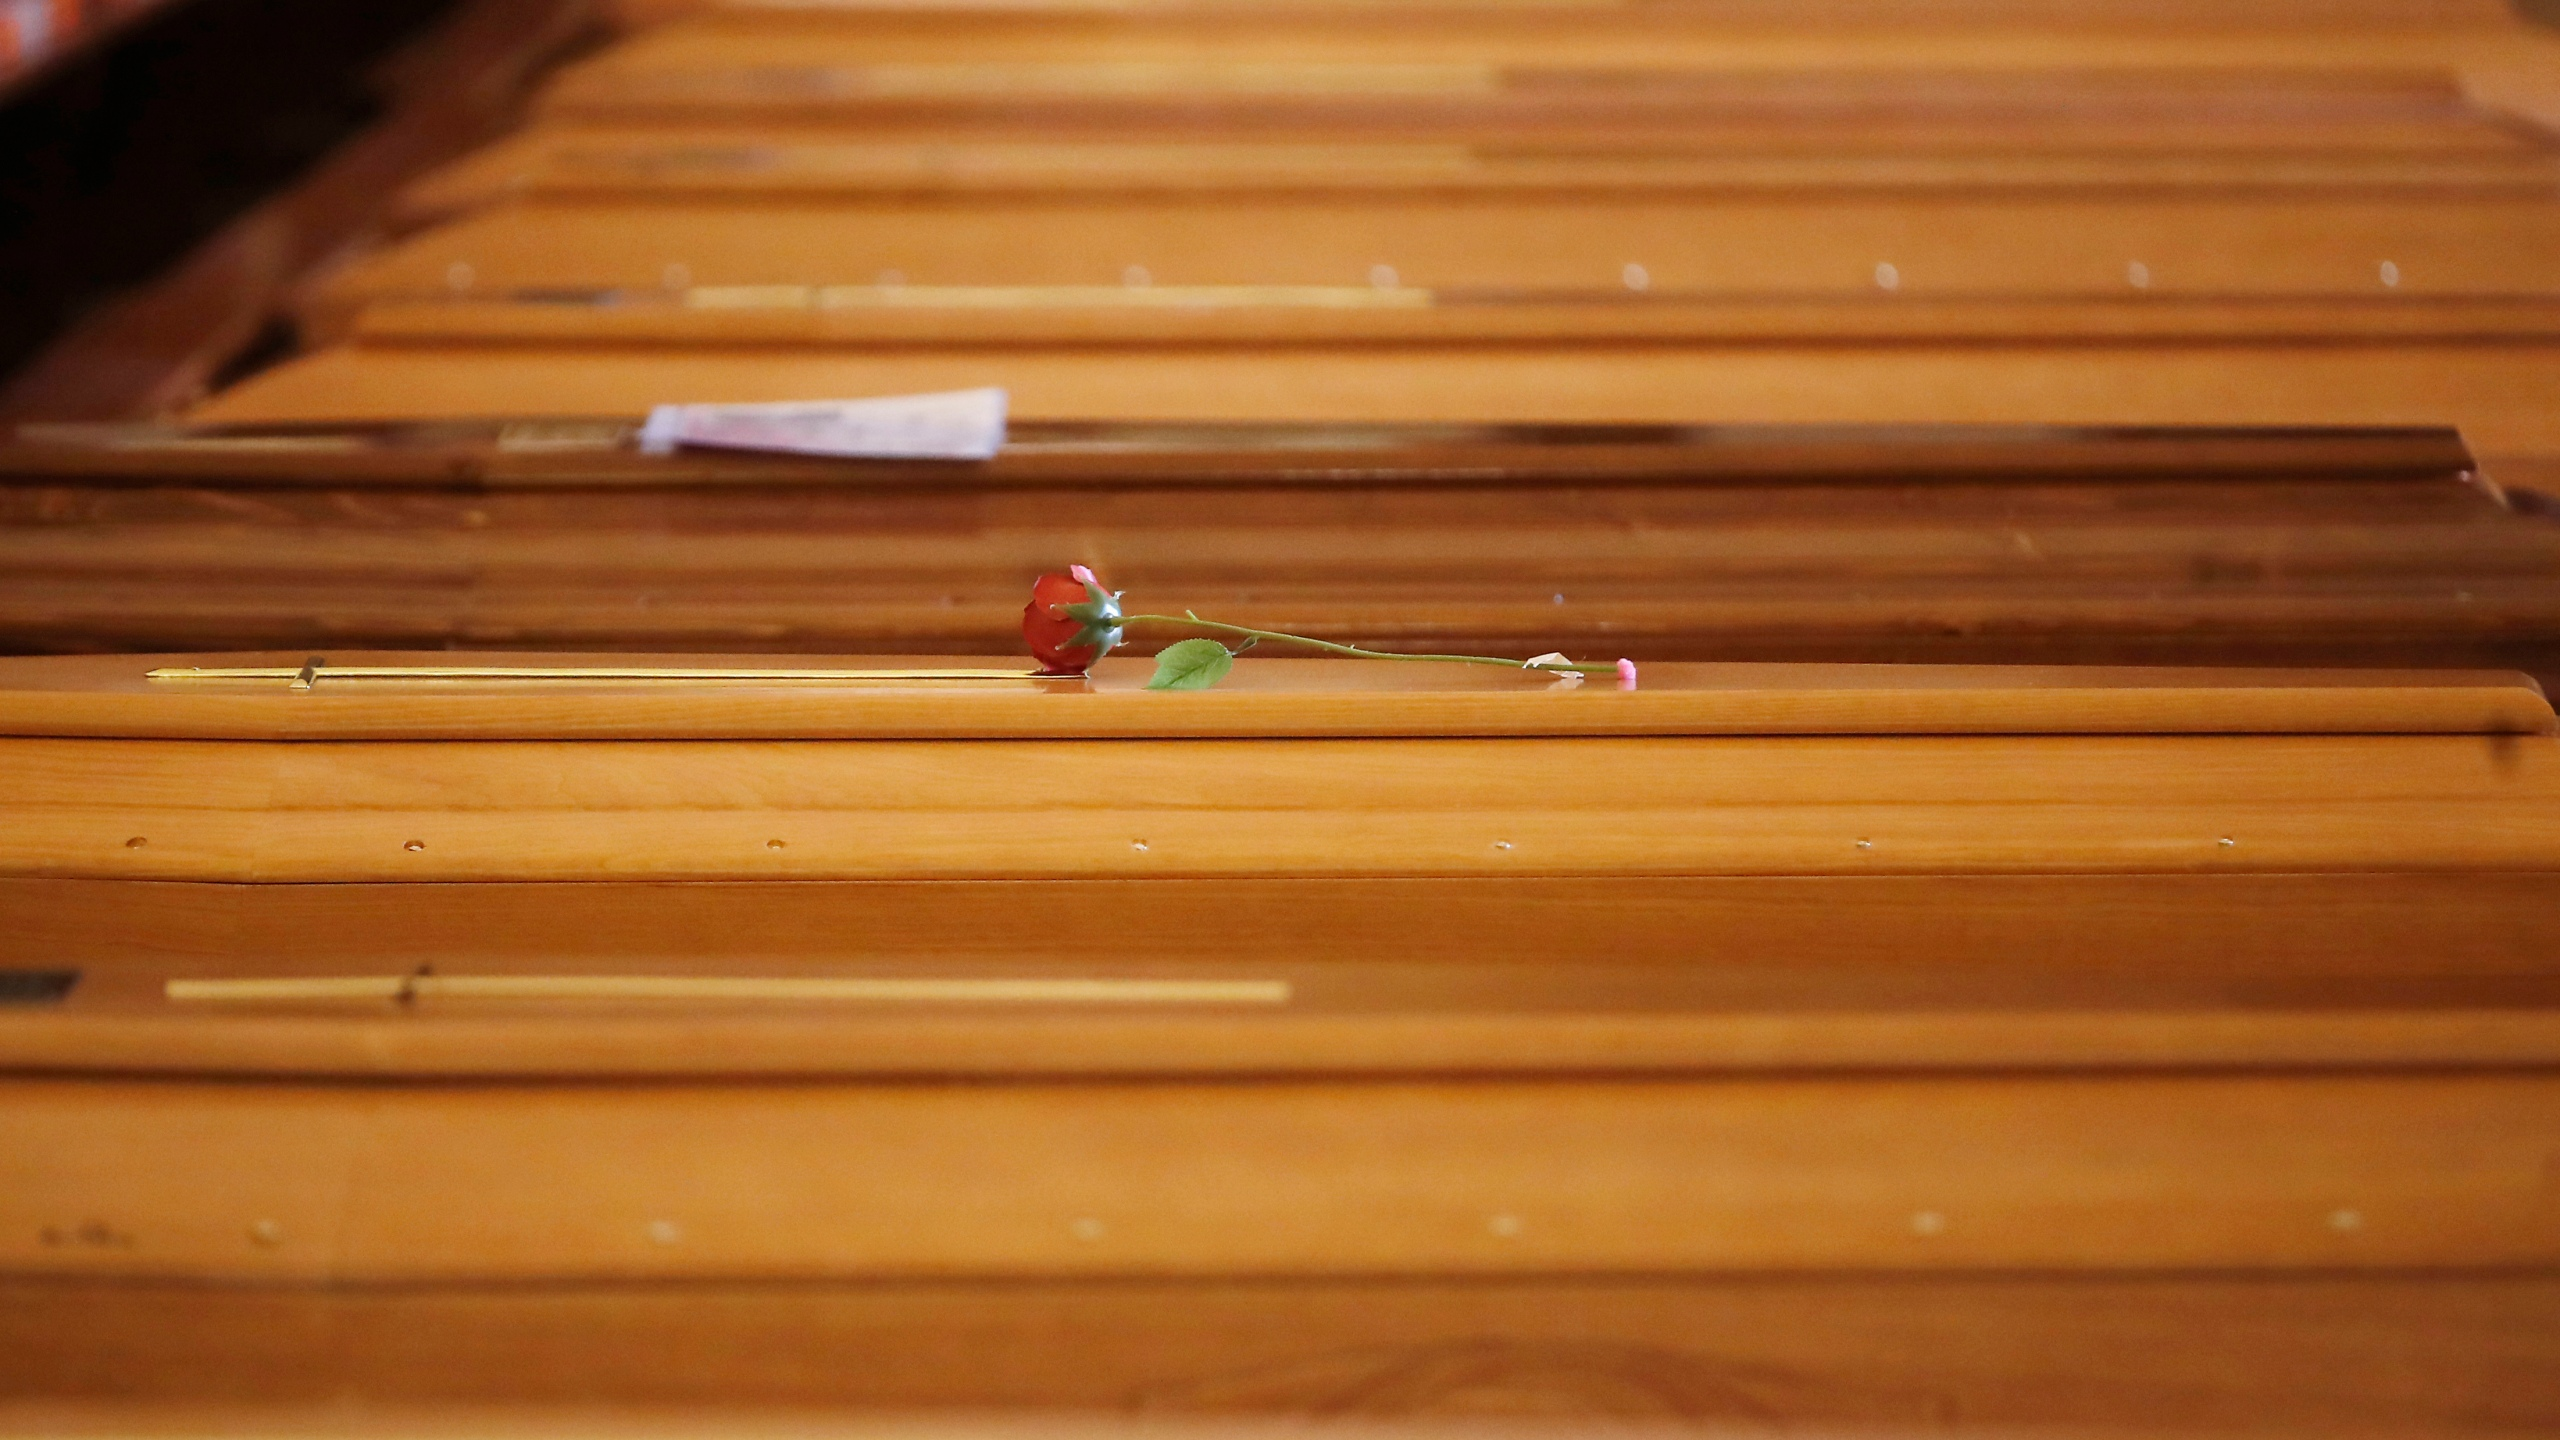 A red rose lies on a coffin lined up along others inside the San Giuseppe church in Seriate, Italy, to be blessed before being sent to crematoriums in Udine and Venice, Northern Italy, Saturday, March 28, 2020. The new coronavirus causes mild or moderate symptoms for most people, but for some, especially older adults and people with existing health problems, it can cause more severe illness or death. (AP Photo/Antonio Calanni)